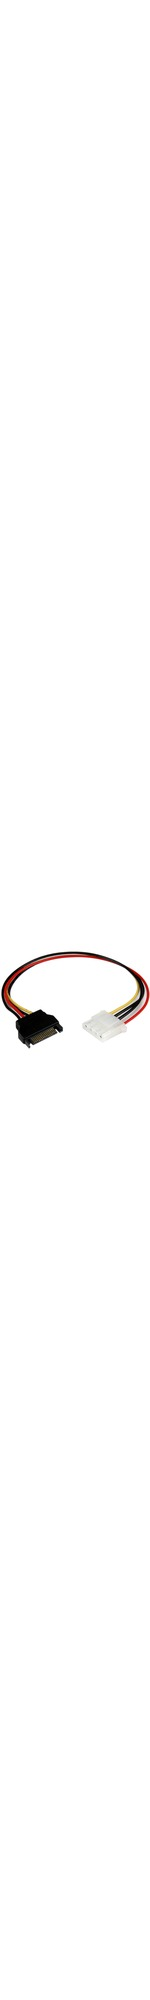 StarTech.com 12in SATA to Molex LP4 Power Cable Adapter - F/M - For Hard Drive